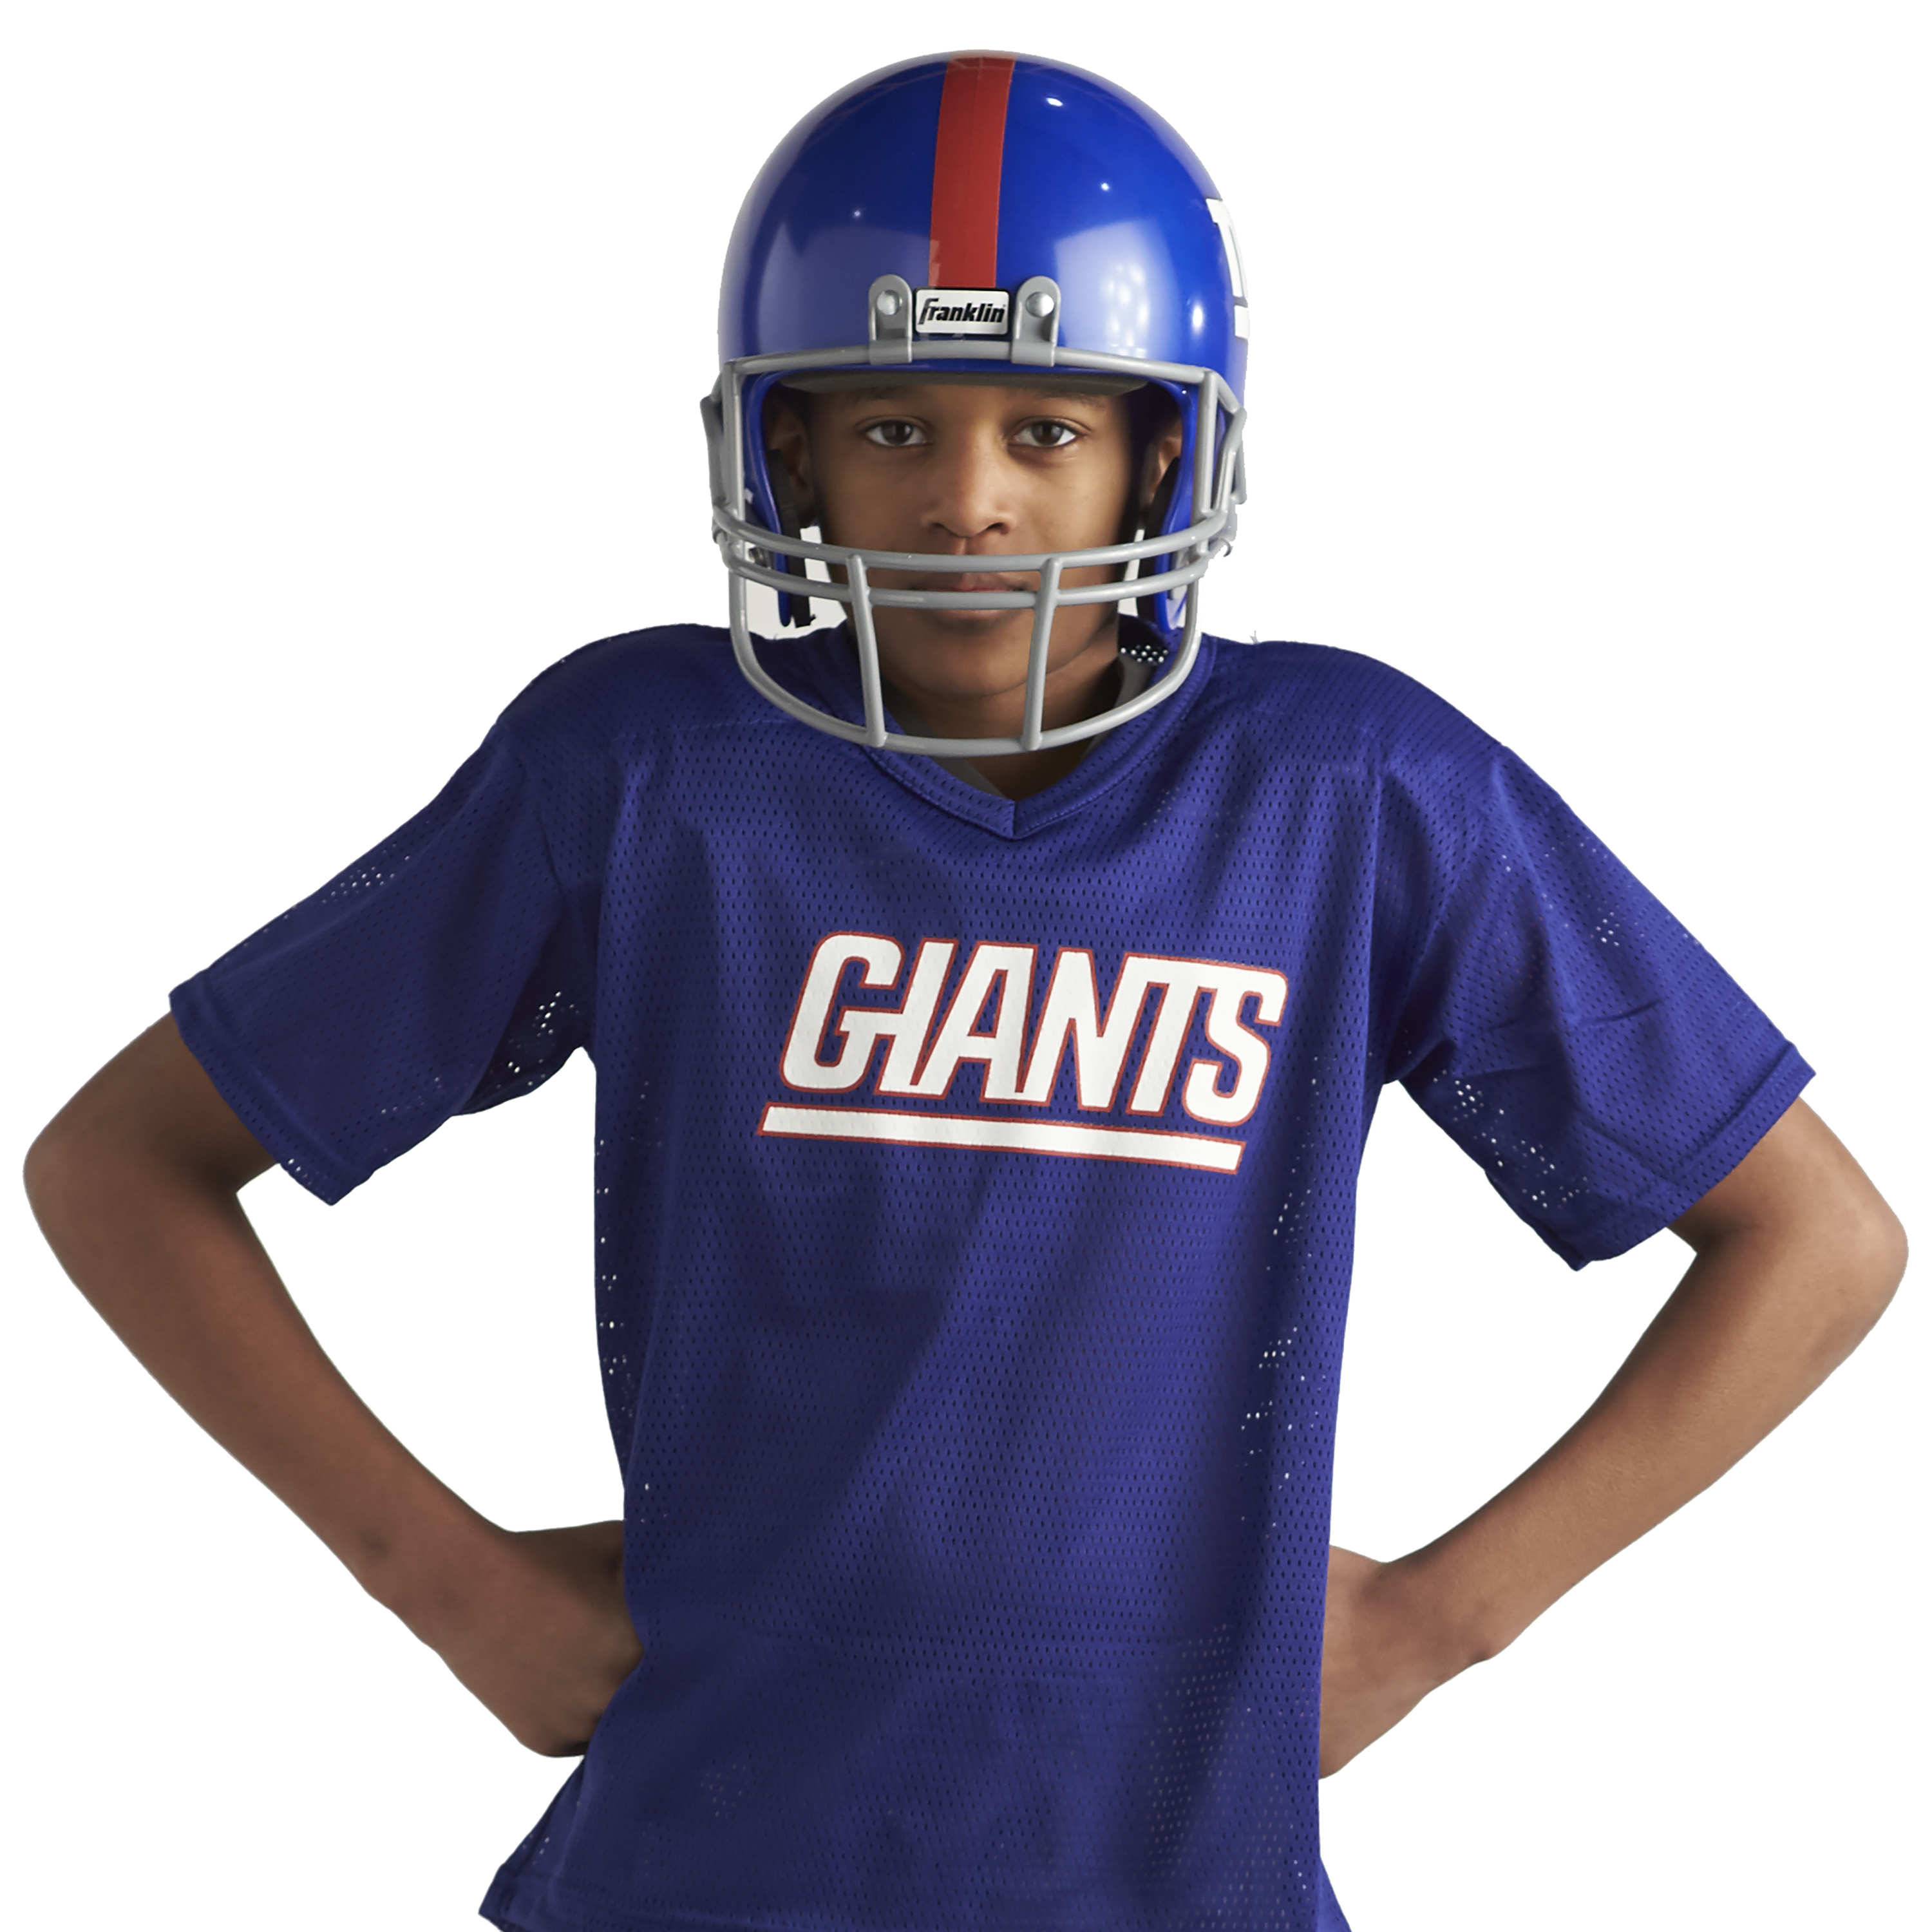 85a5300a Franklin Sports NFL New York Giants Youth Licensed Deluxe Uniform ...